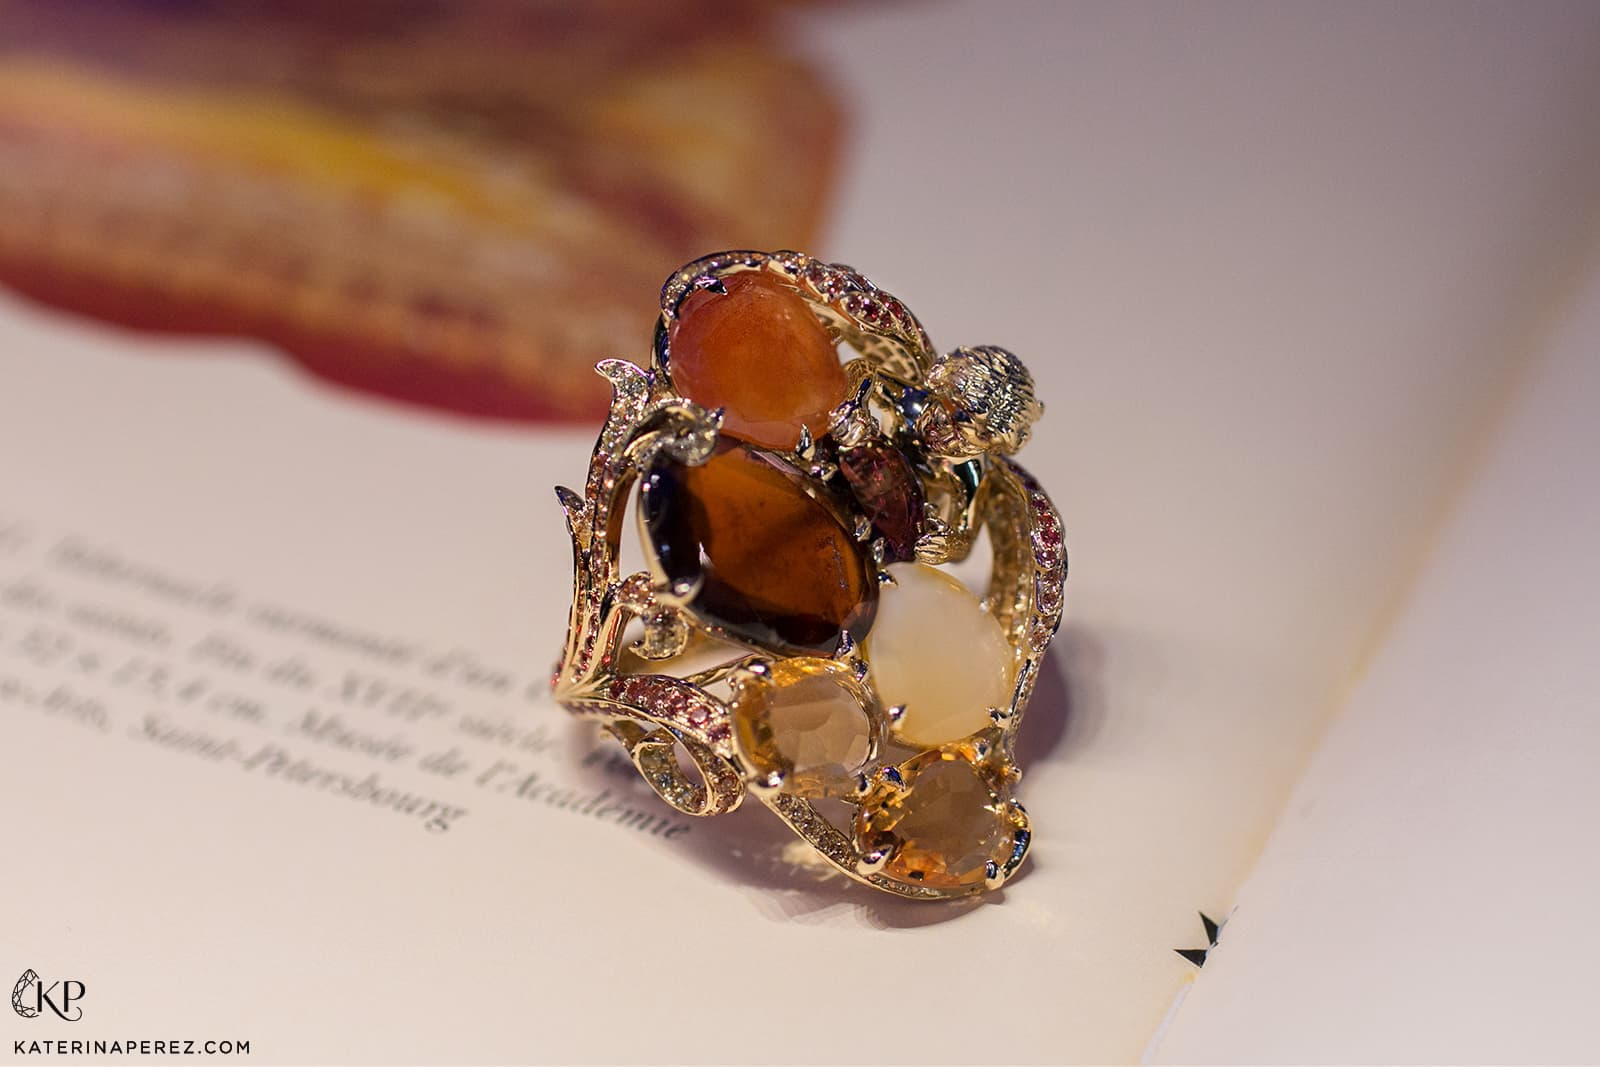 Lydia Courteille La Chambre d'Ambre collection Angel ring with 2.85ct of yellow and orange sapphires, garnets, citrines, chalcedony, and yellow opal in yellow gold and titanium